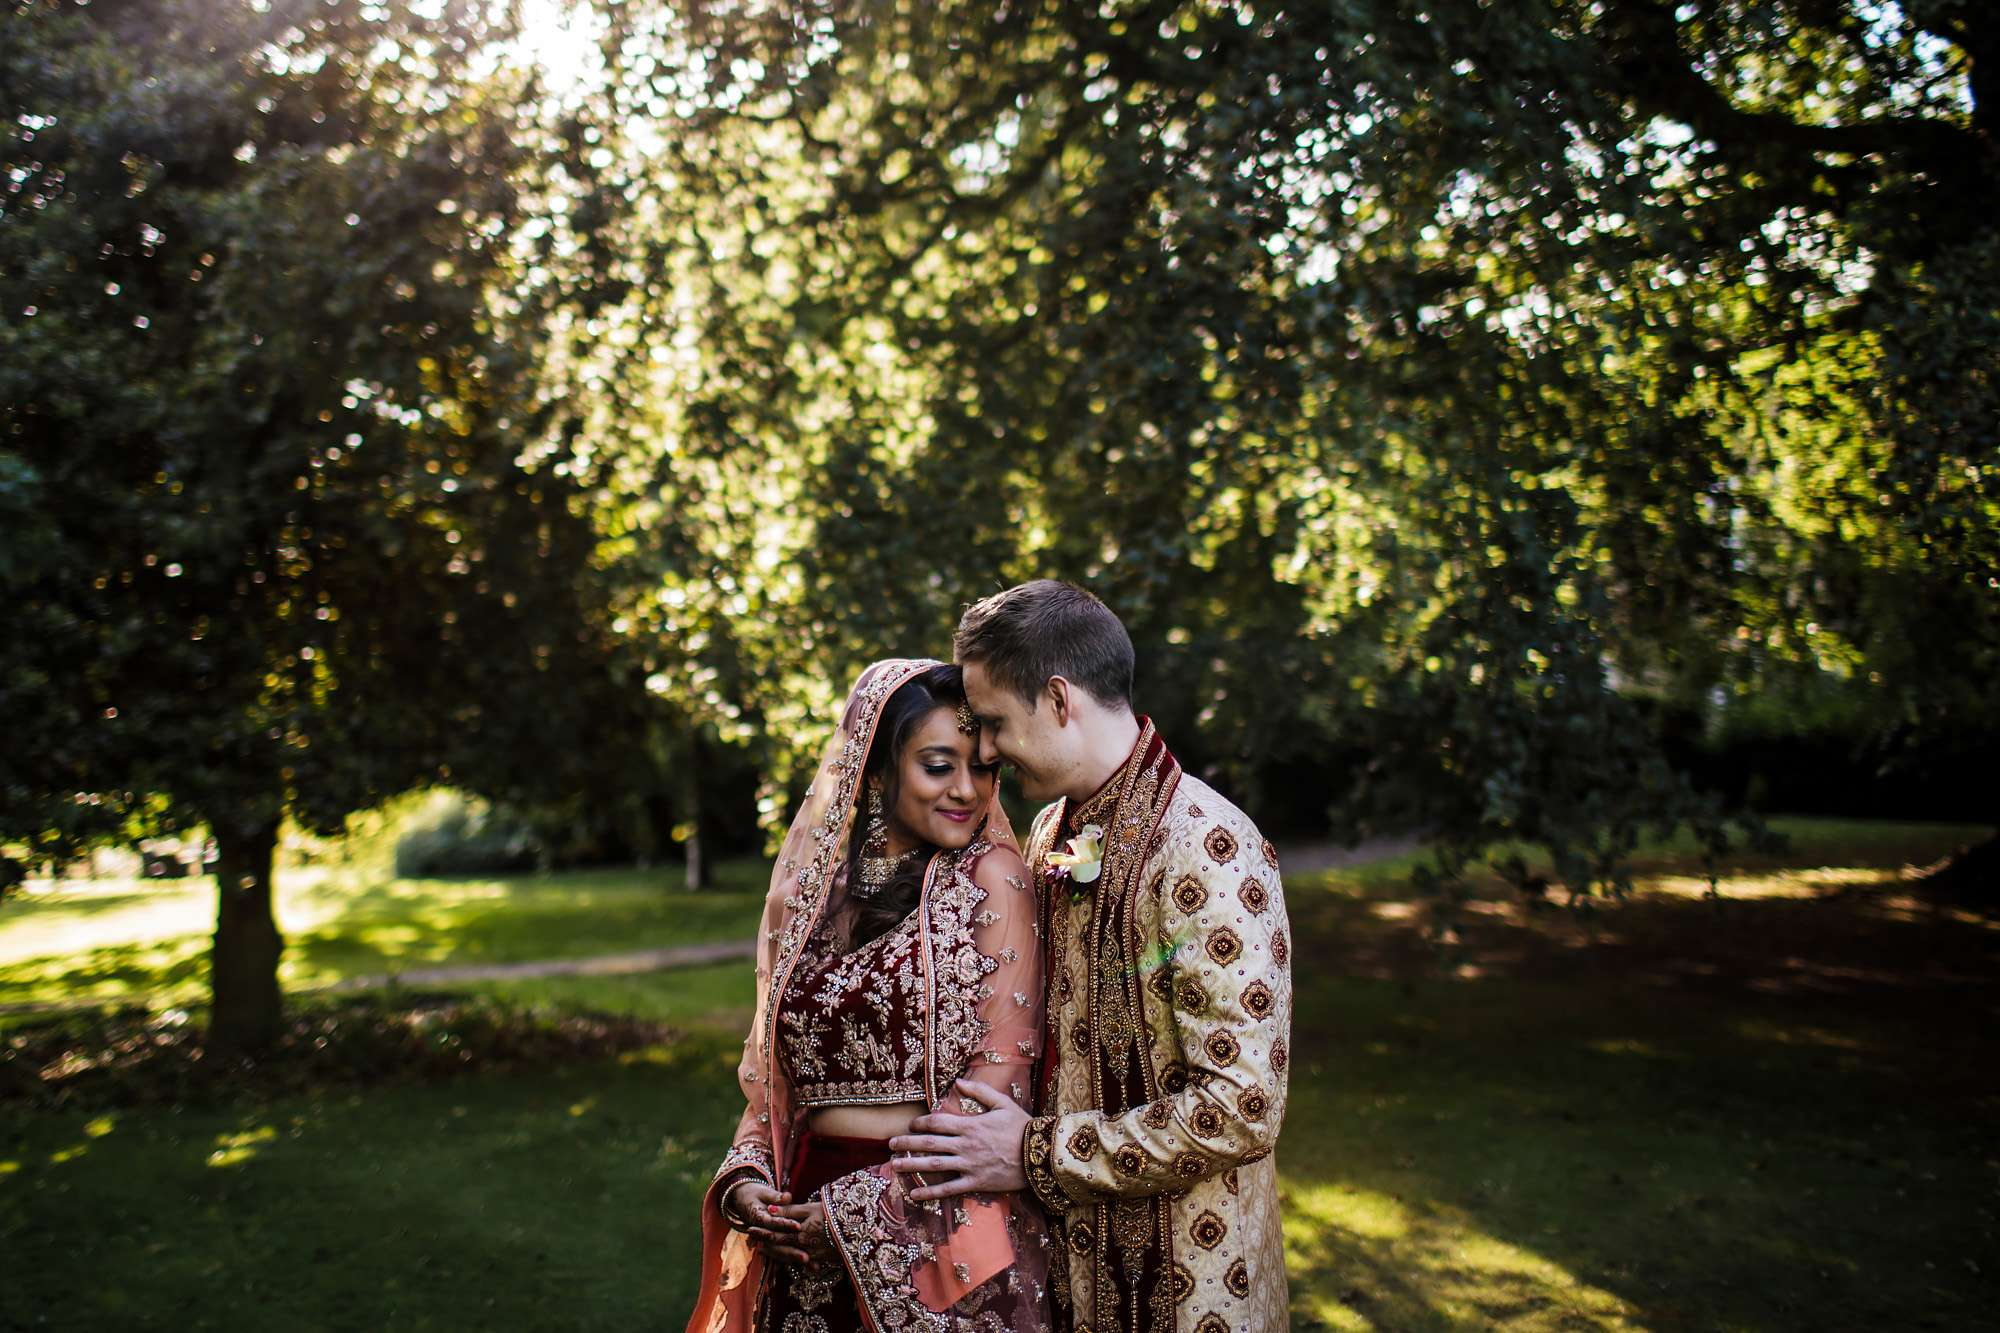 Gorgeous outdoor portrait at an Asian wedding in Yorkshire